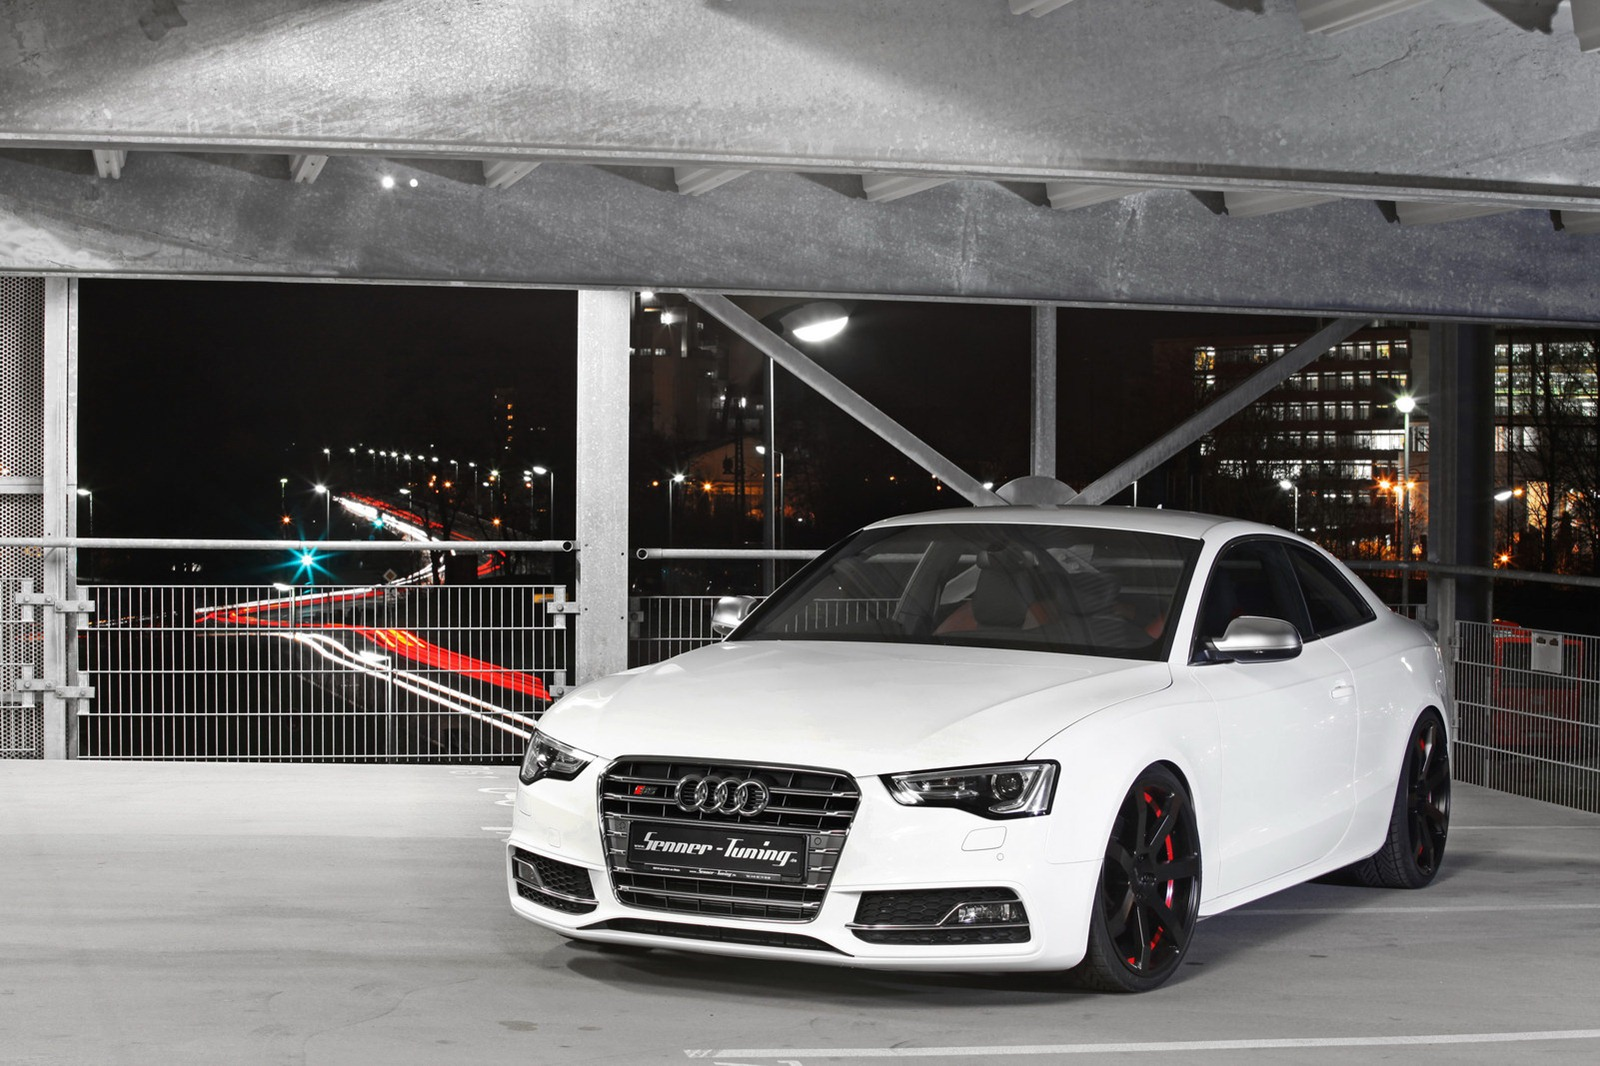 Senner-Tuning-Audi-S5-Coupe-5[2] - Audi Tuning Mag